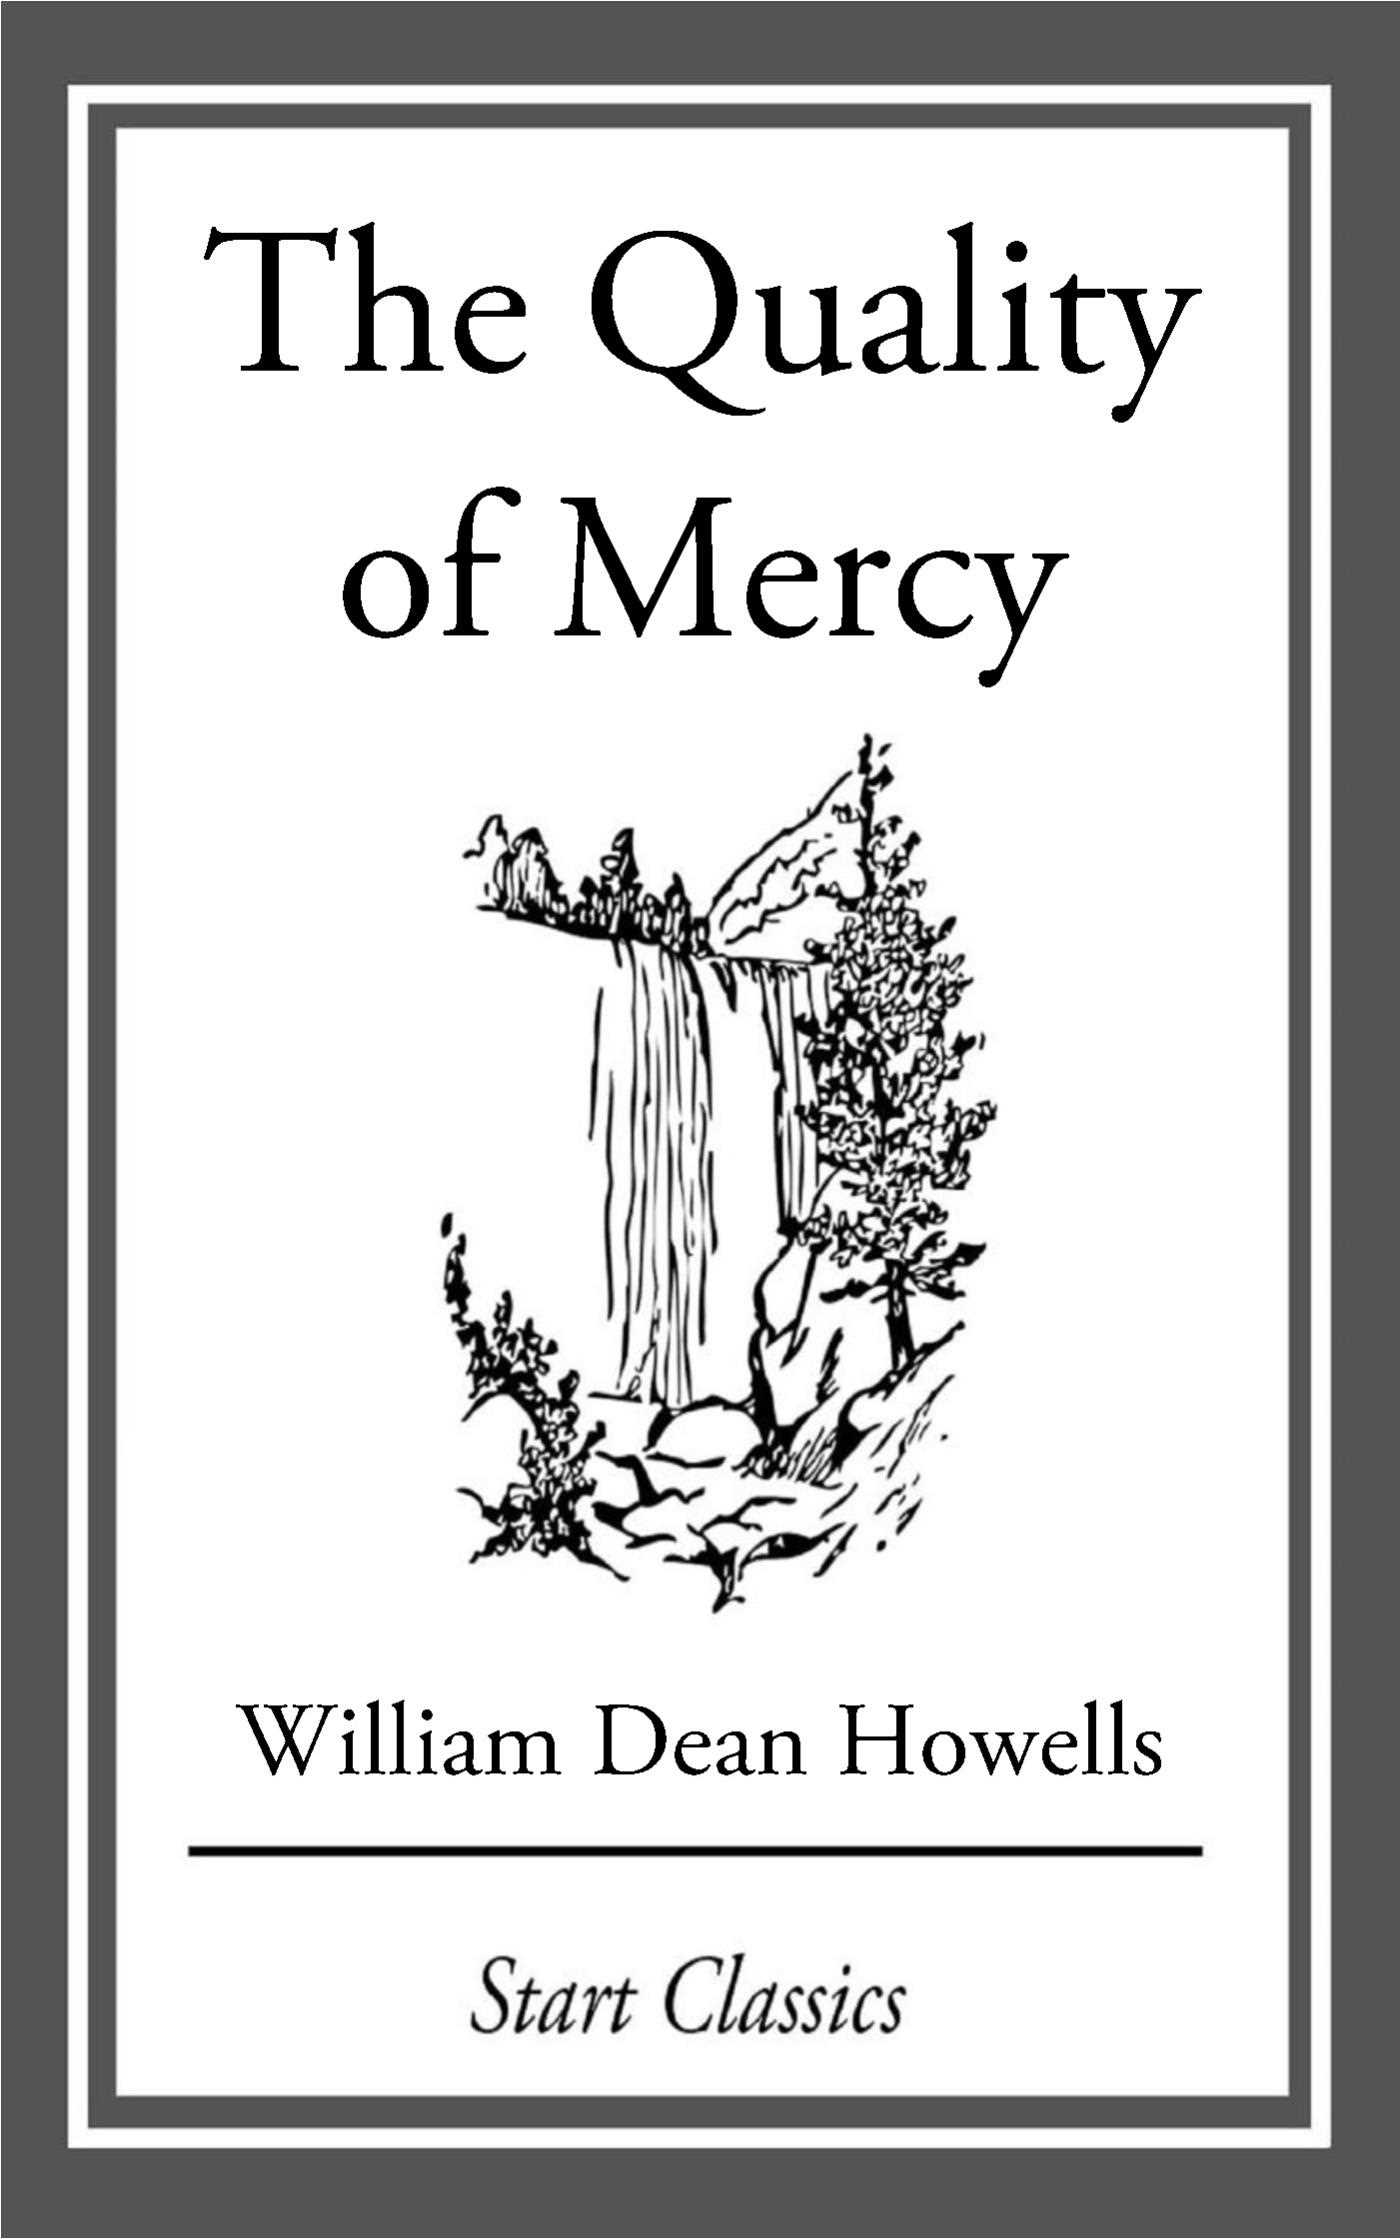 The quality of mercy 9781633555464 hr